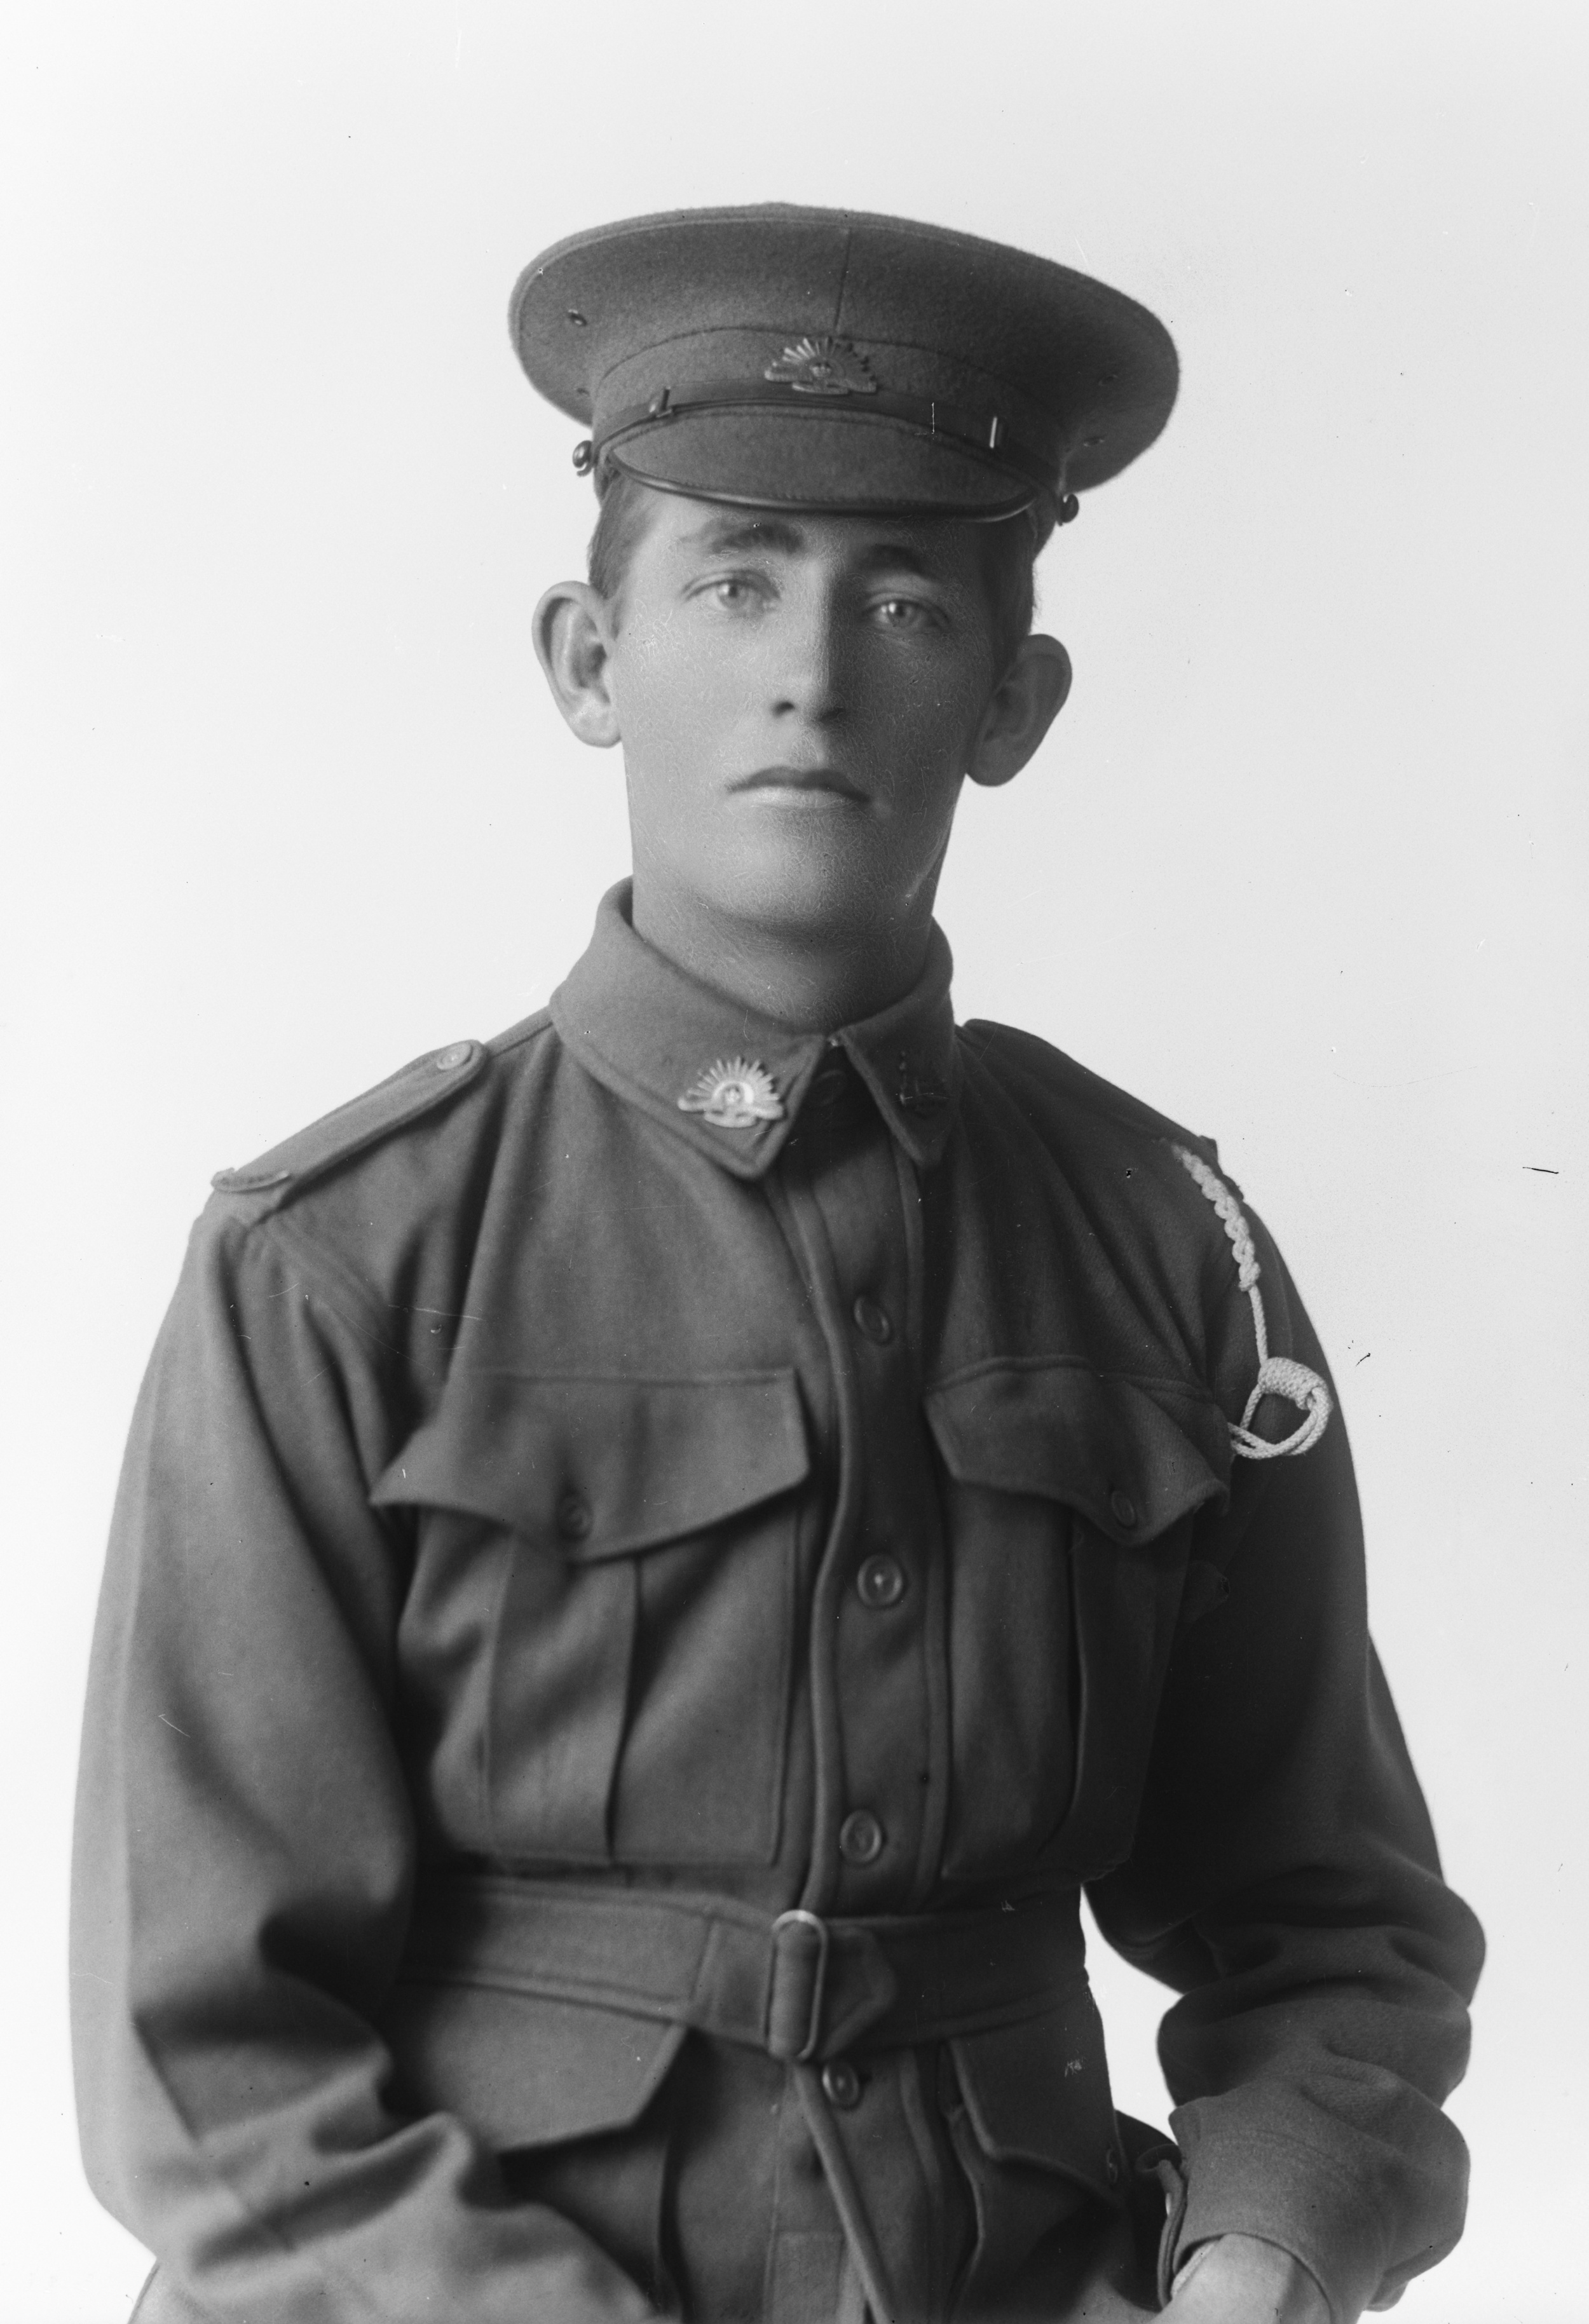 Photographed at the Dease Studio, 117 Barrack Street Perth WA Image courtesy of the State Library of Western Australia: 108556PD